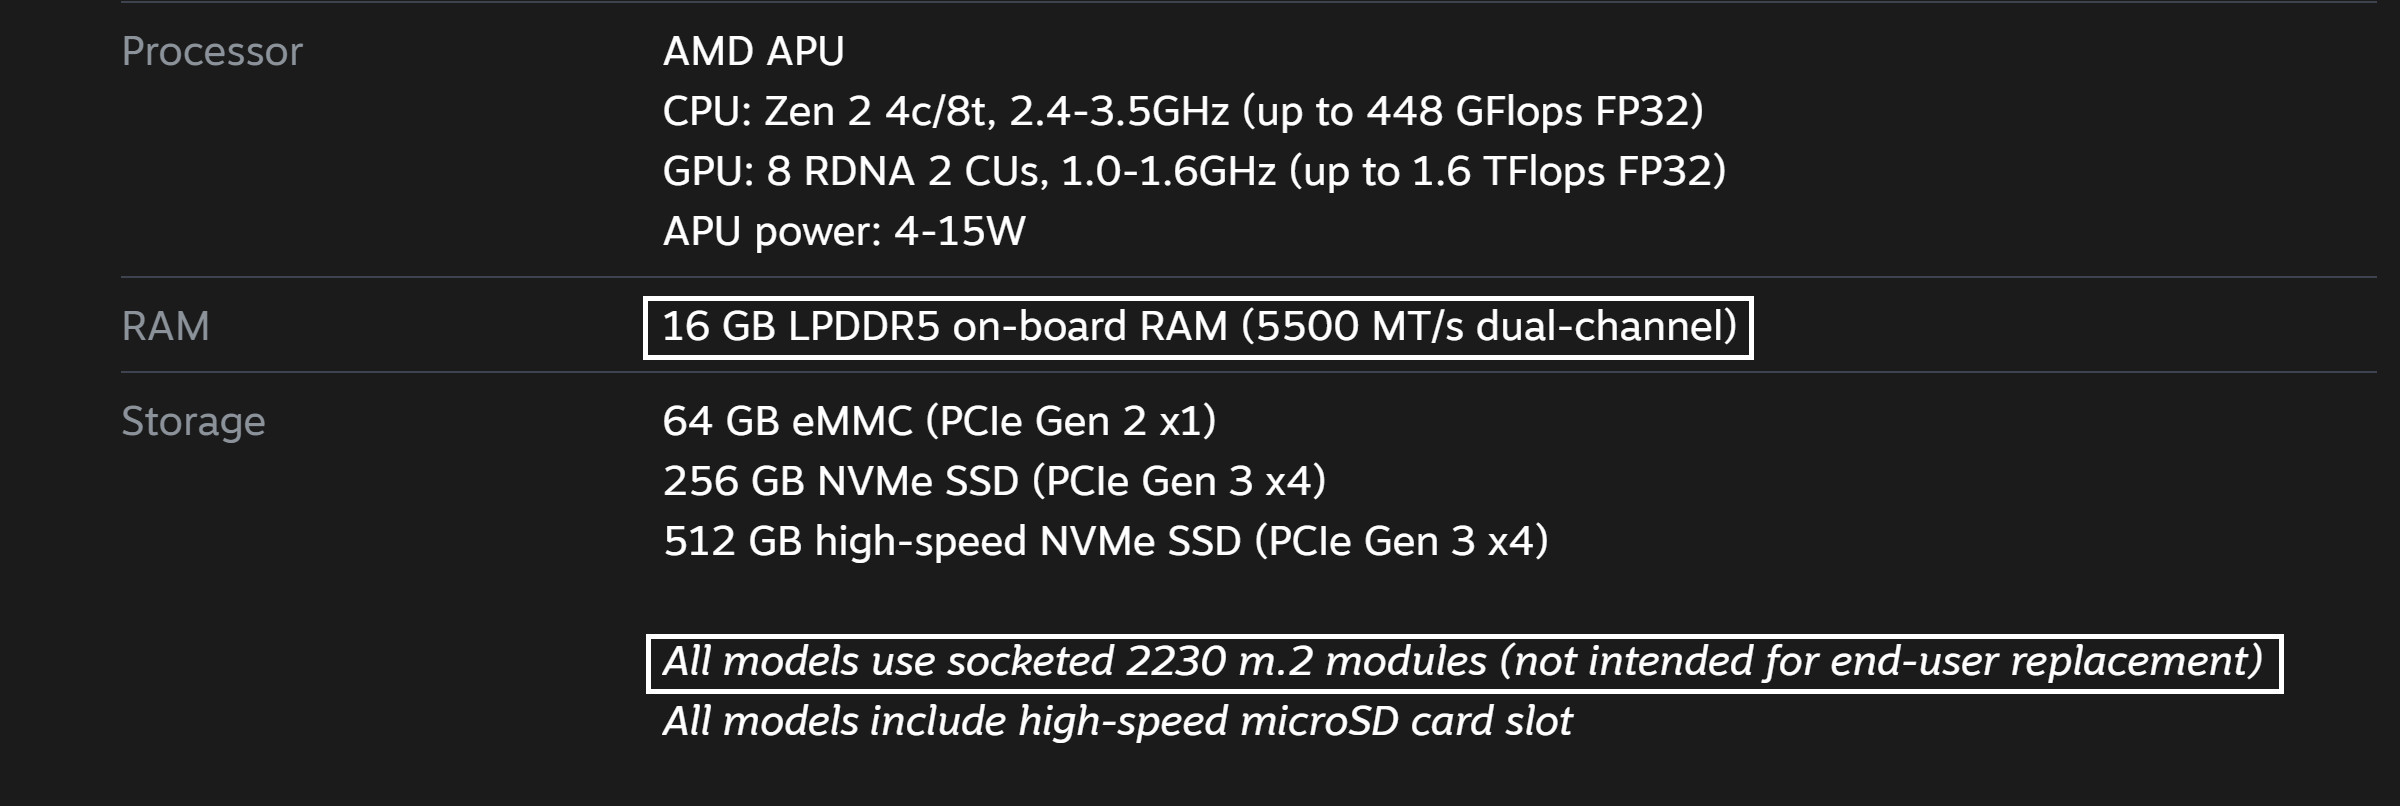 Steam Deck updated specifications